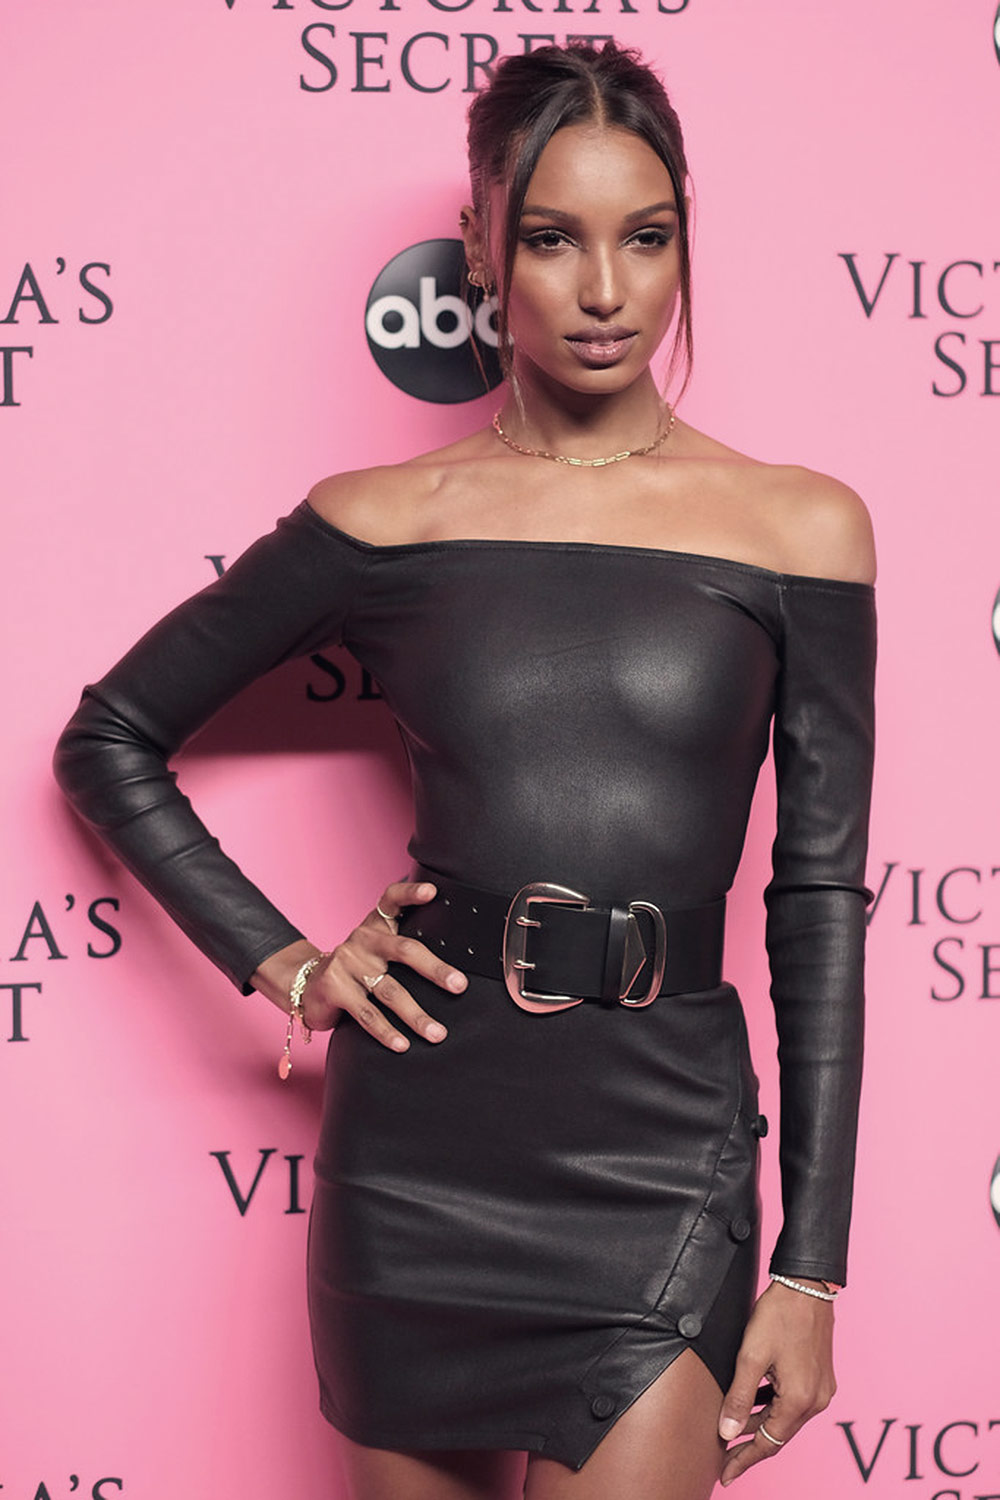 Jasmine Tookes attends 2018 Victoria's Secret Viewing Party